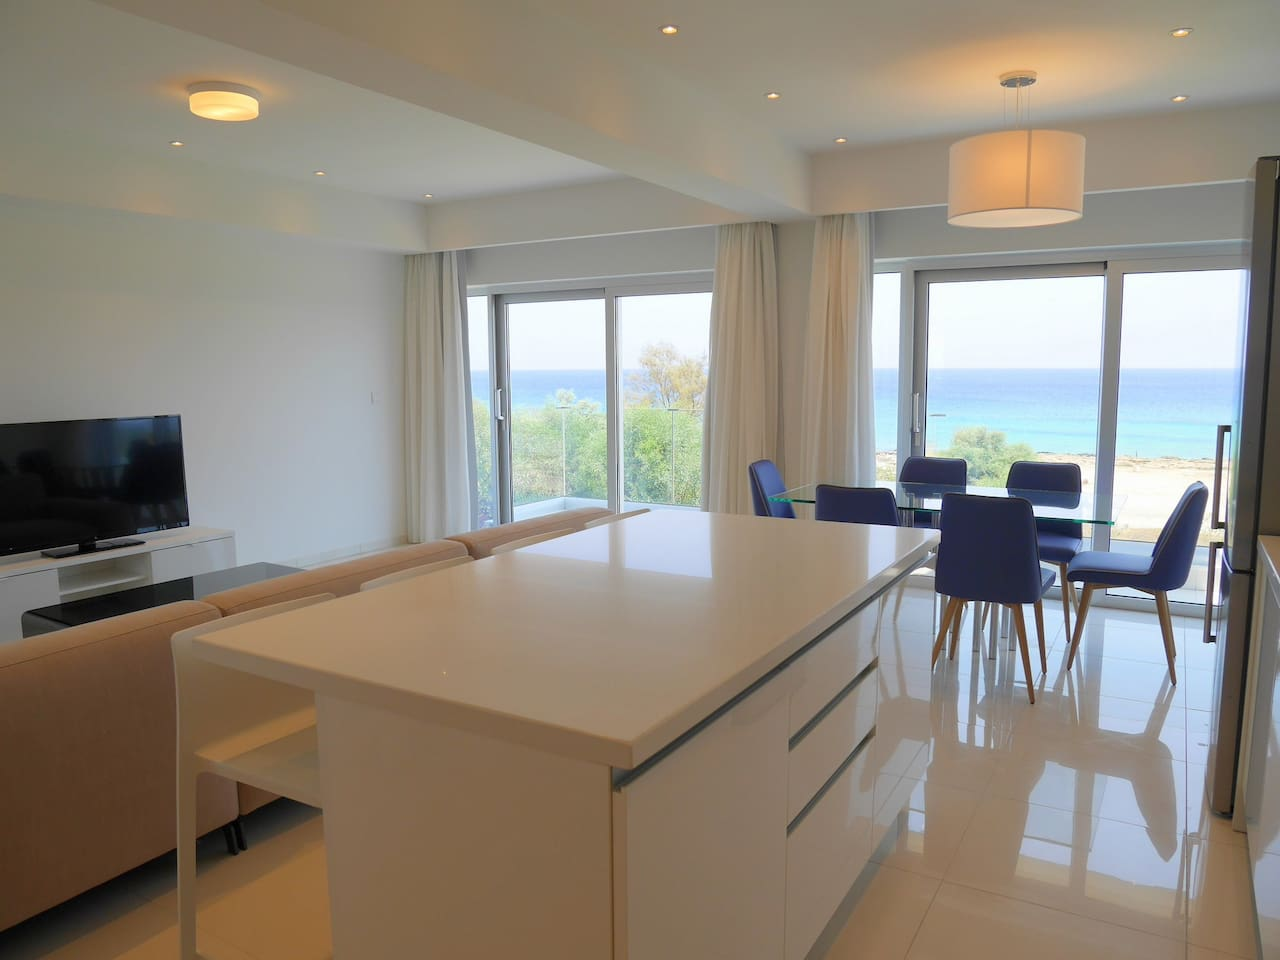 2 Bed Luxury Apt with Large Communal Pool - B3-101 photo 26059195